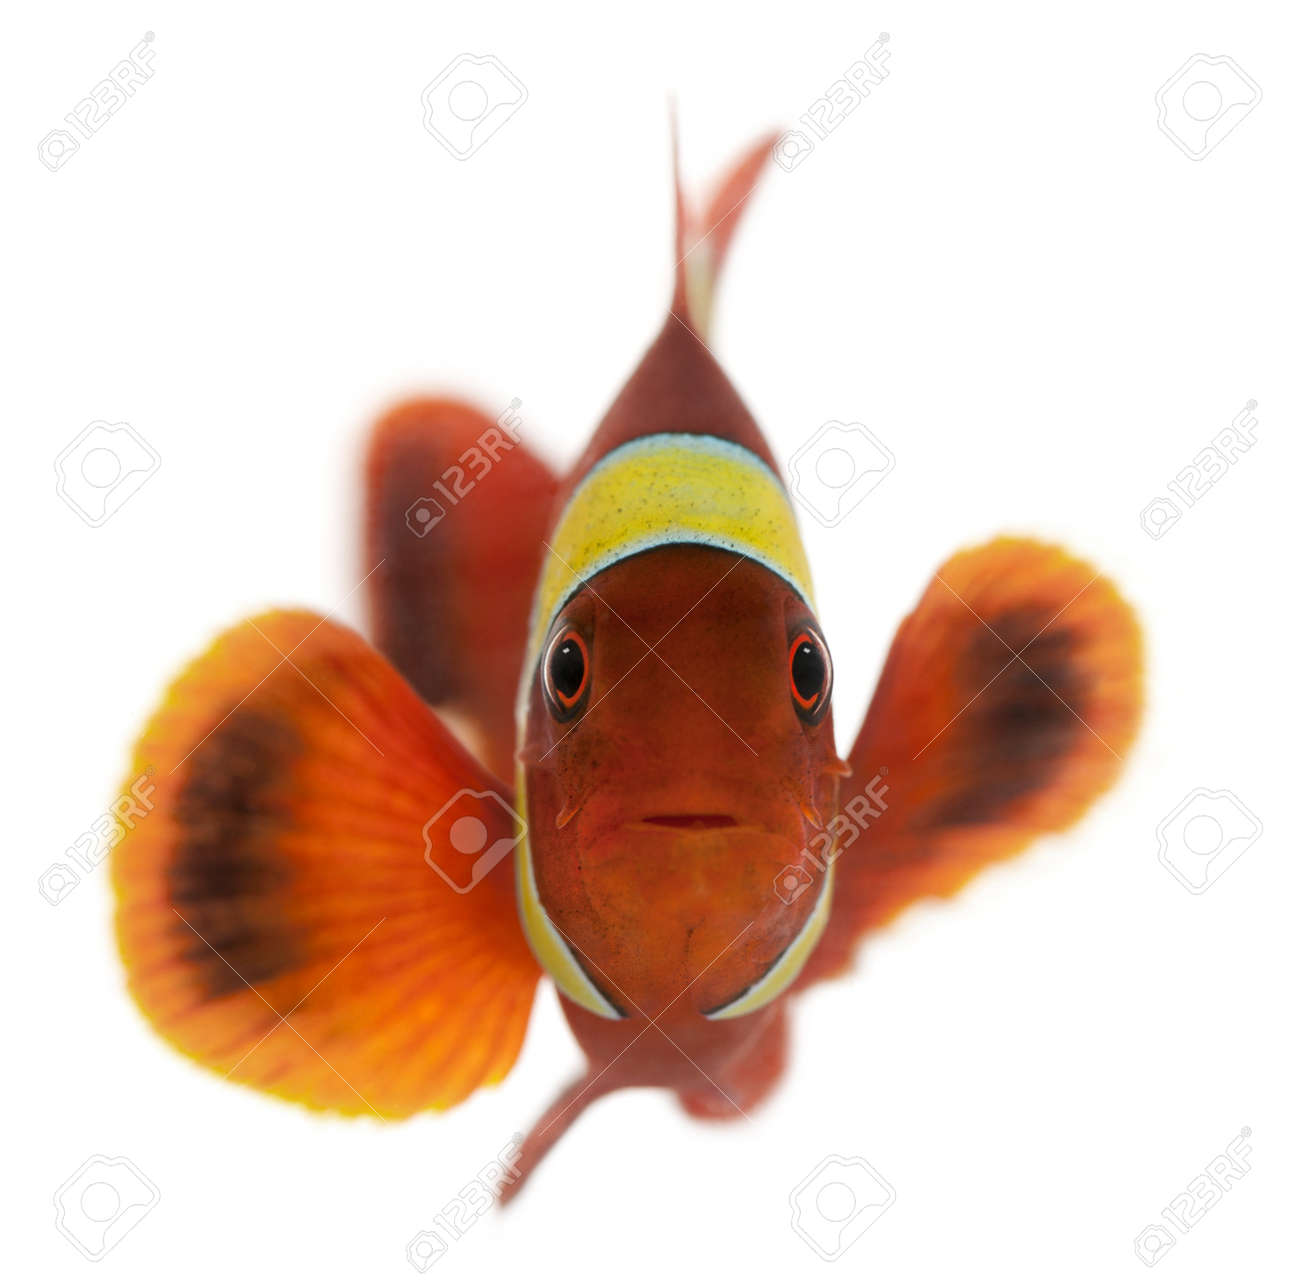 Maroon clownfish, Premnas biaculeatus, in front of white background Stock Photo - 8021132